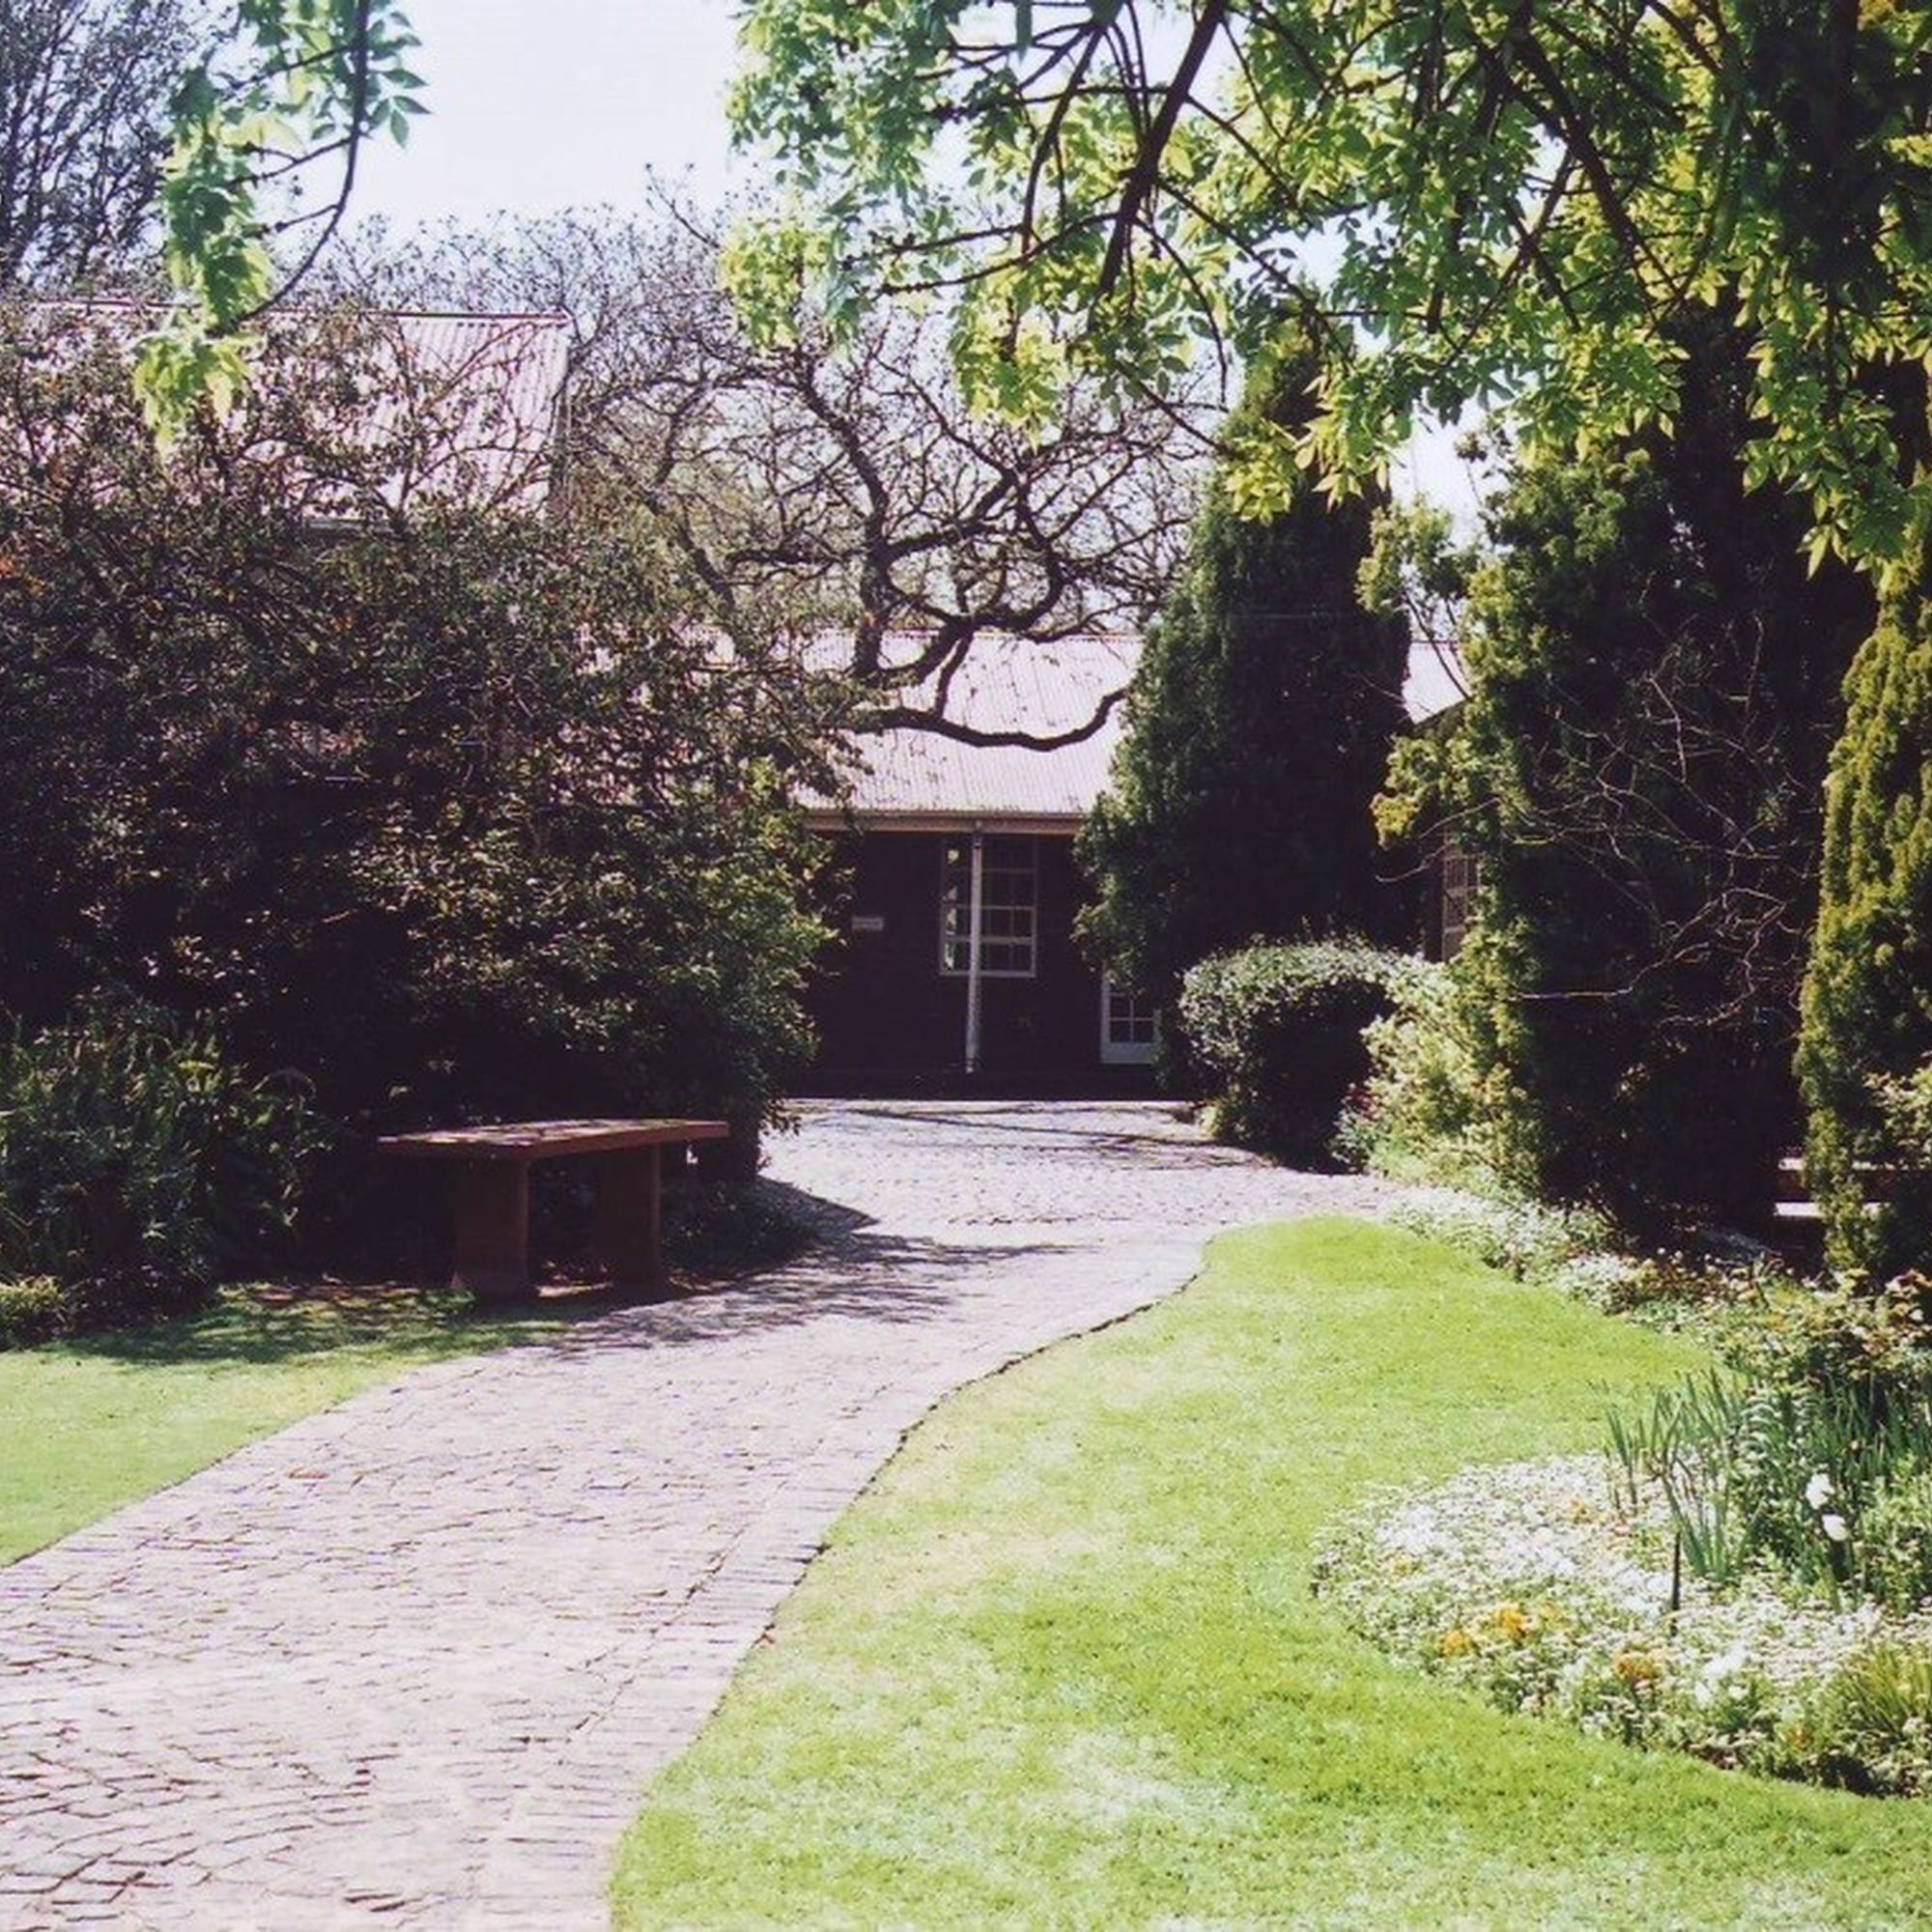 A path to the junior school